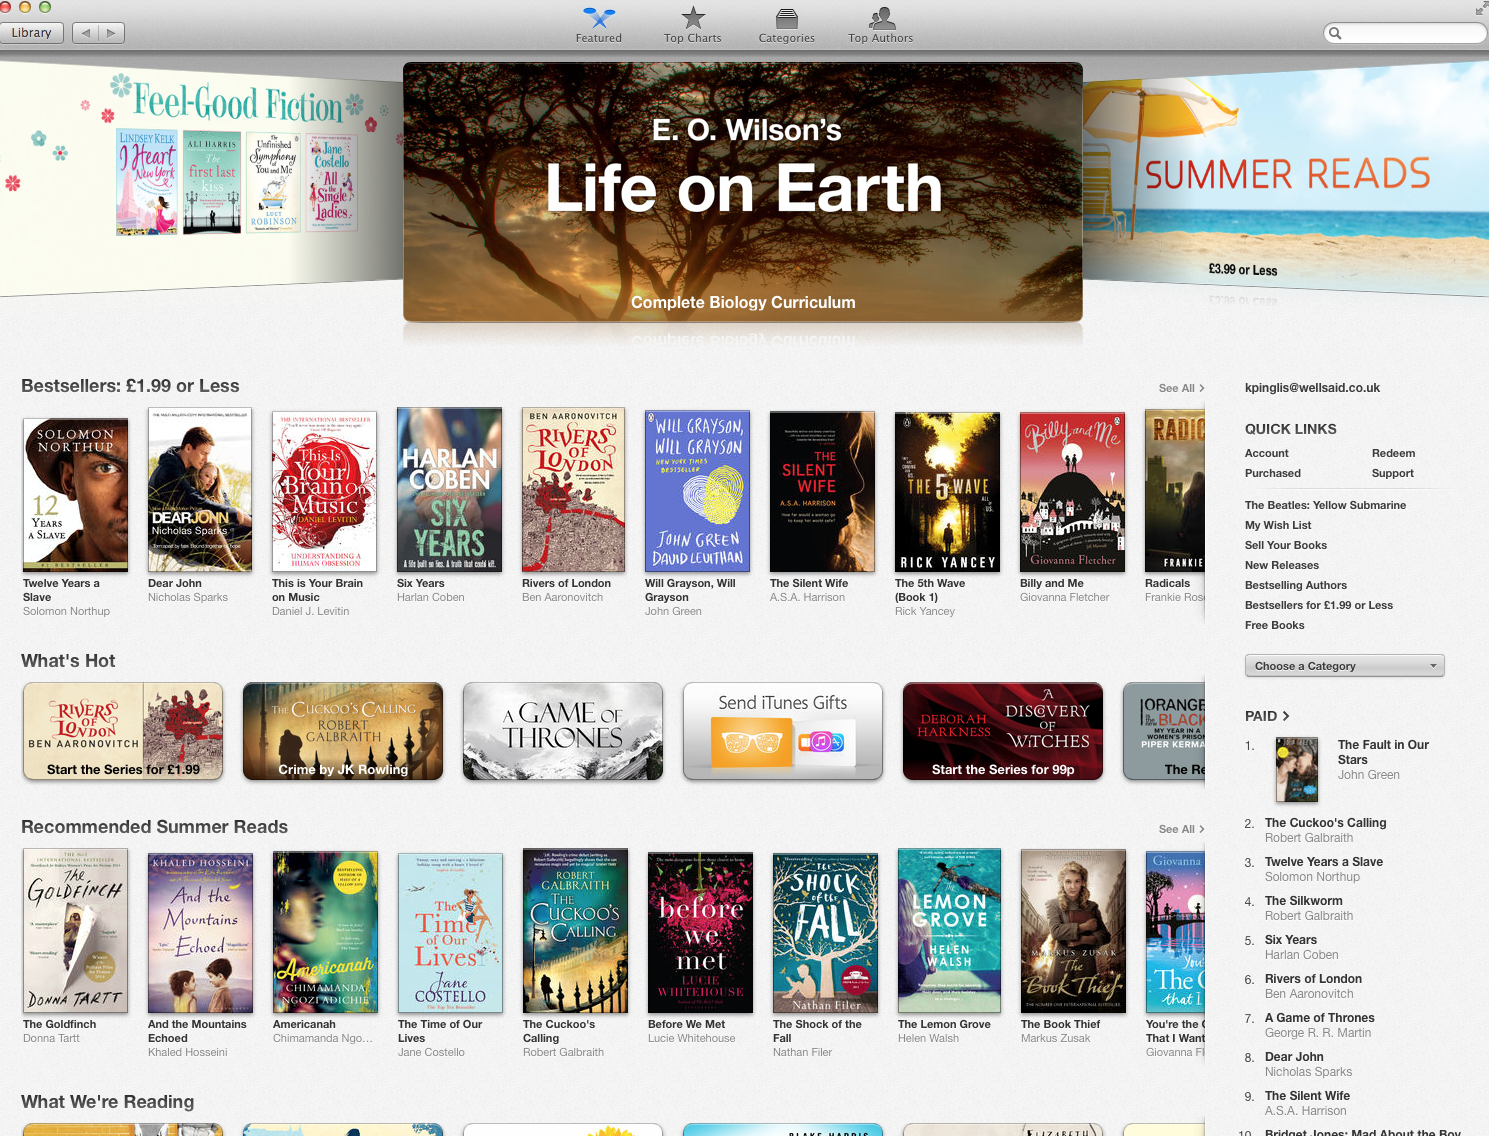 Typical iBooks landing page